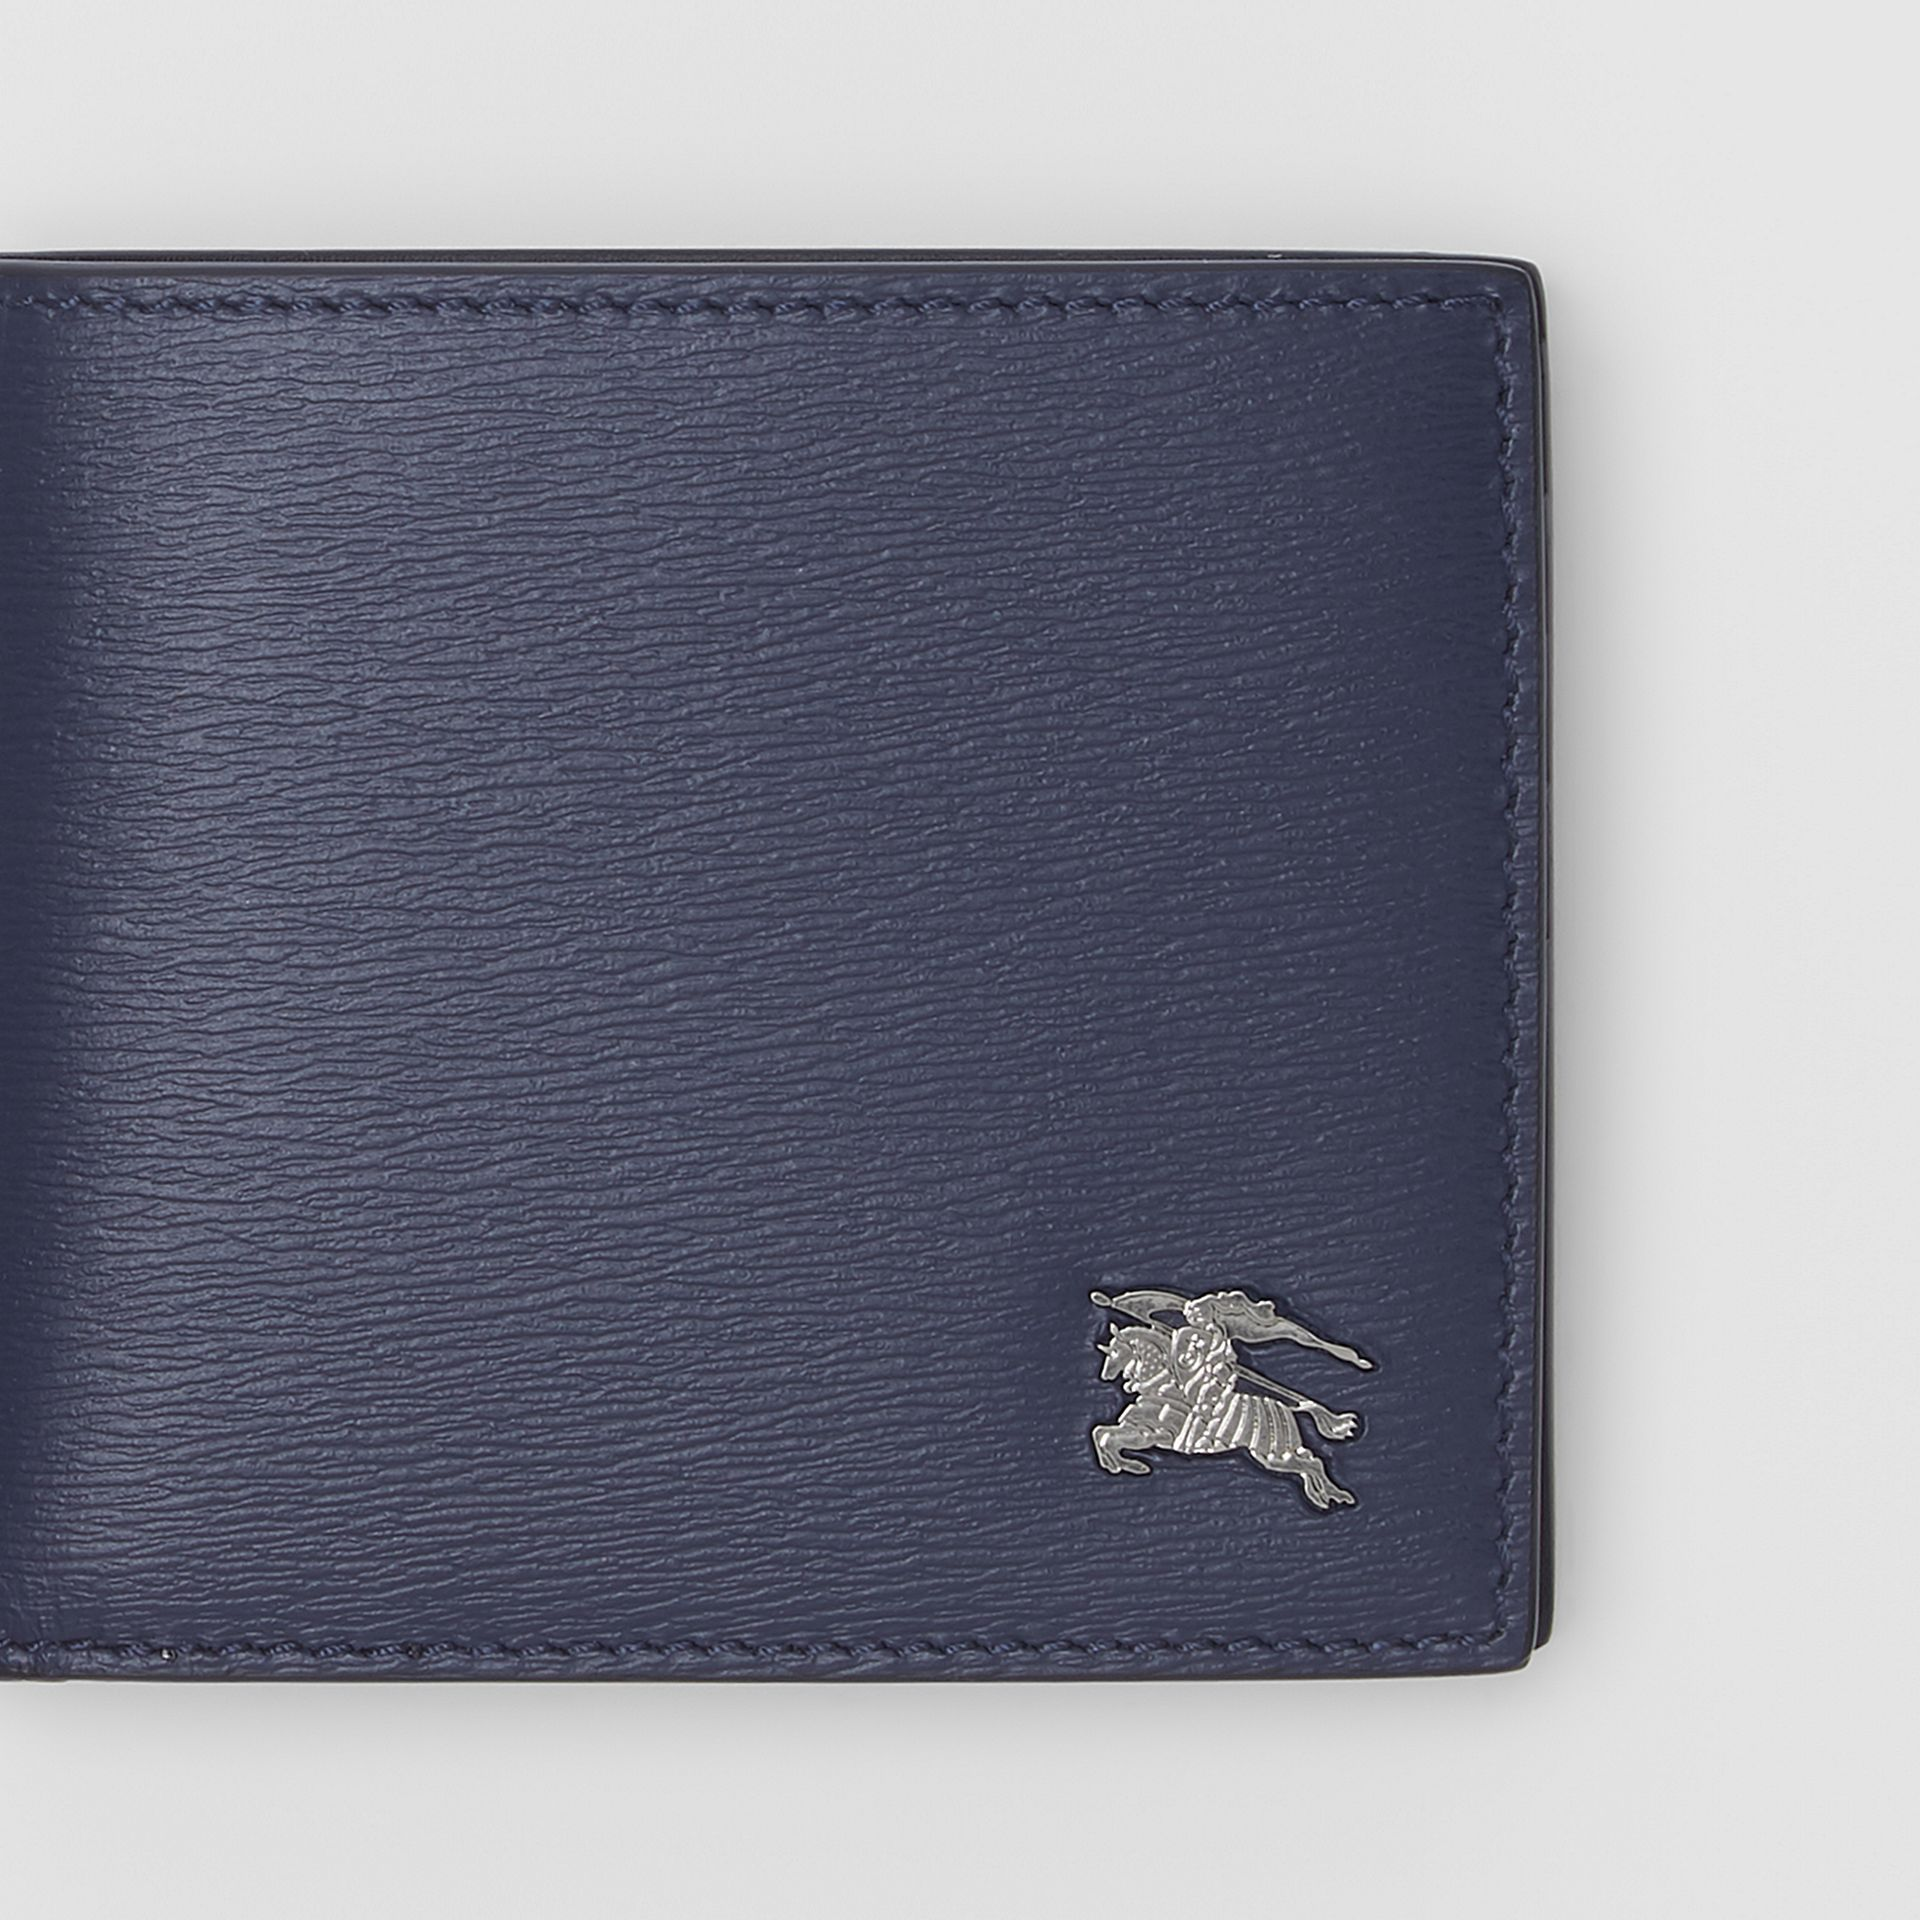 London Leather Bifold Wallet with ID Card Case in Navy - Men | Burberry - gallery image 1